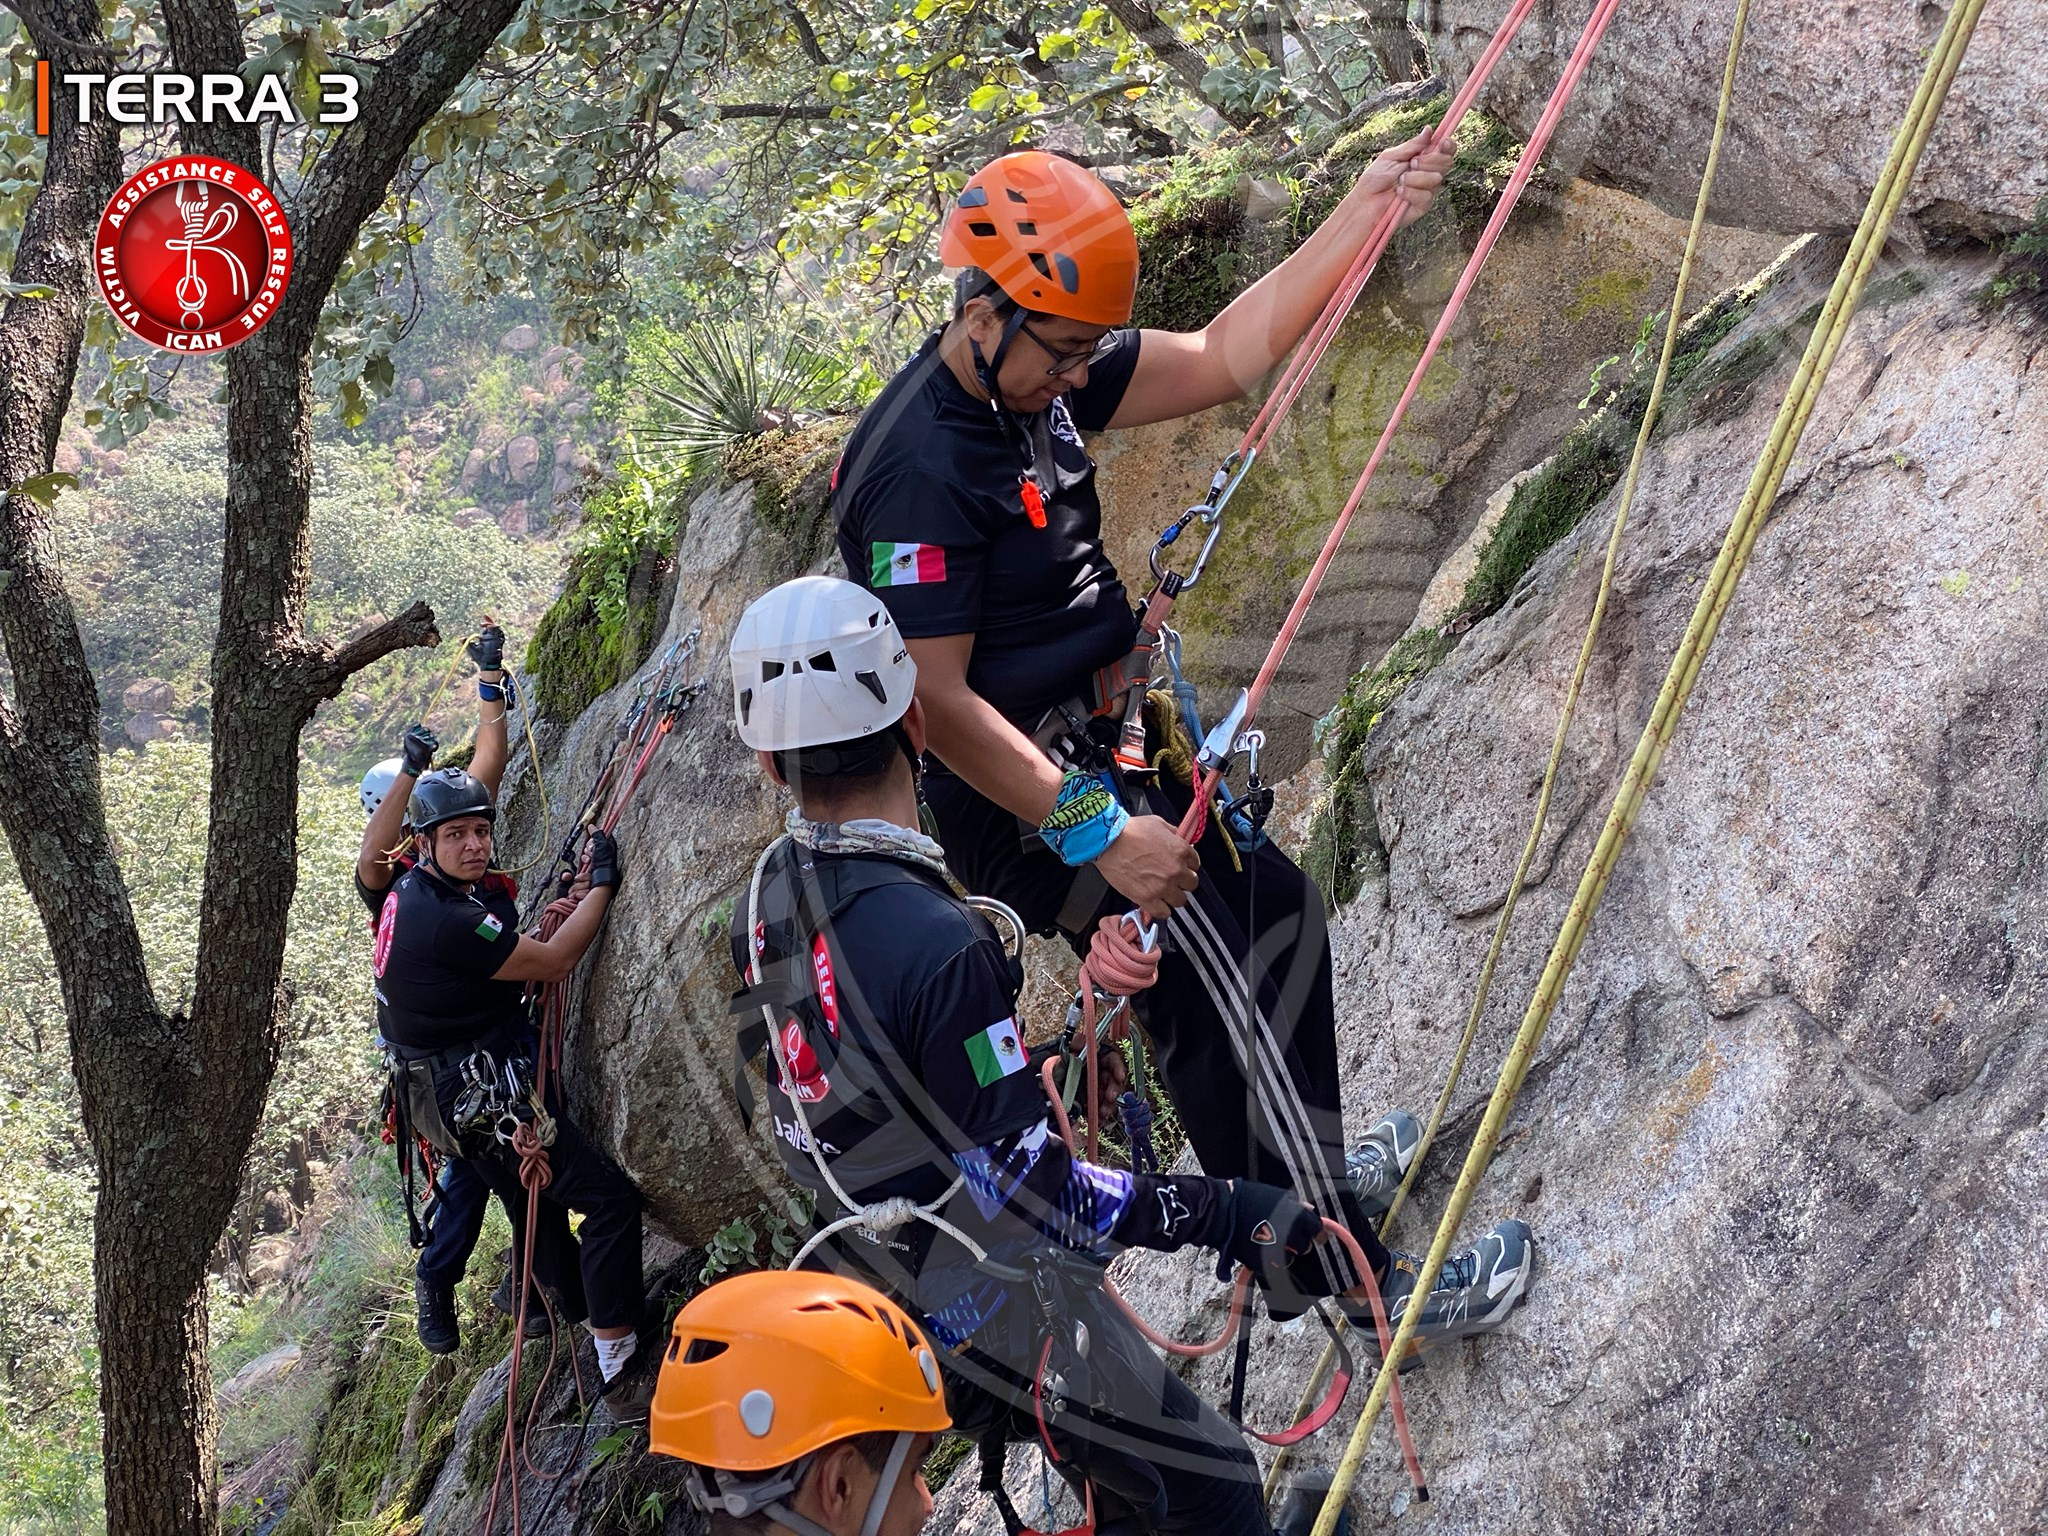 Auto Rescate Canyoning